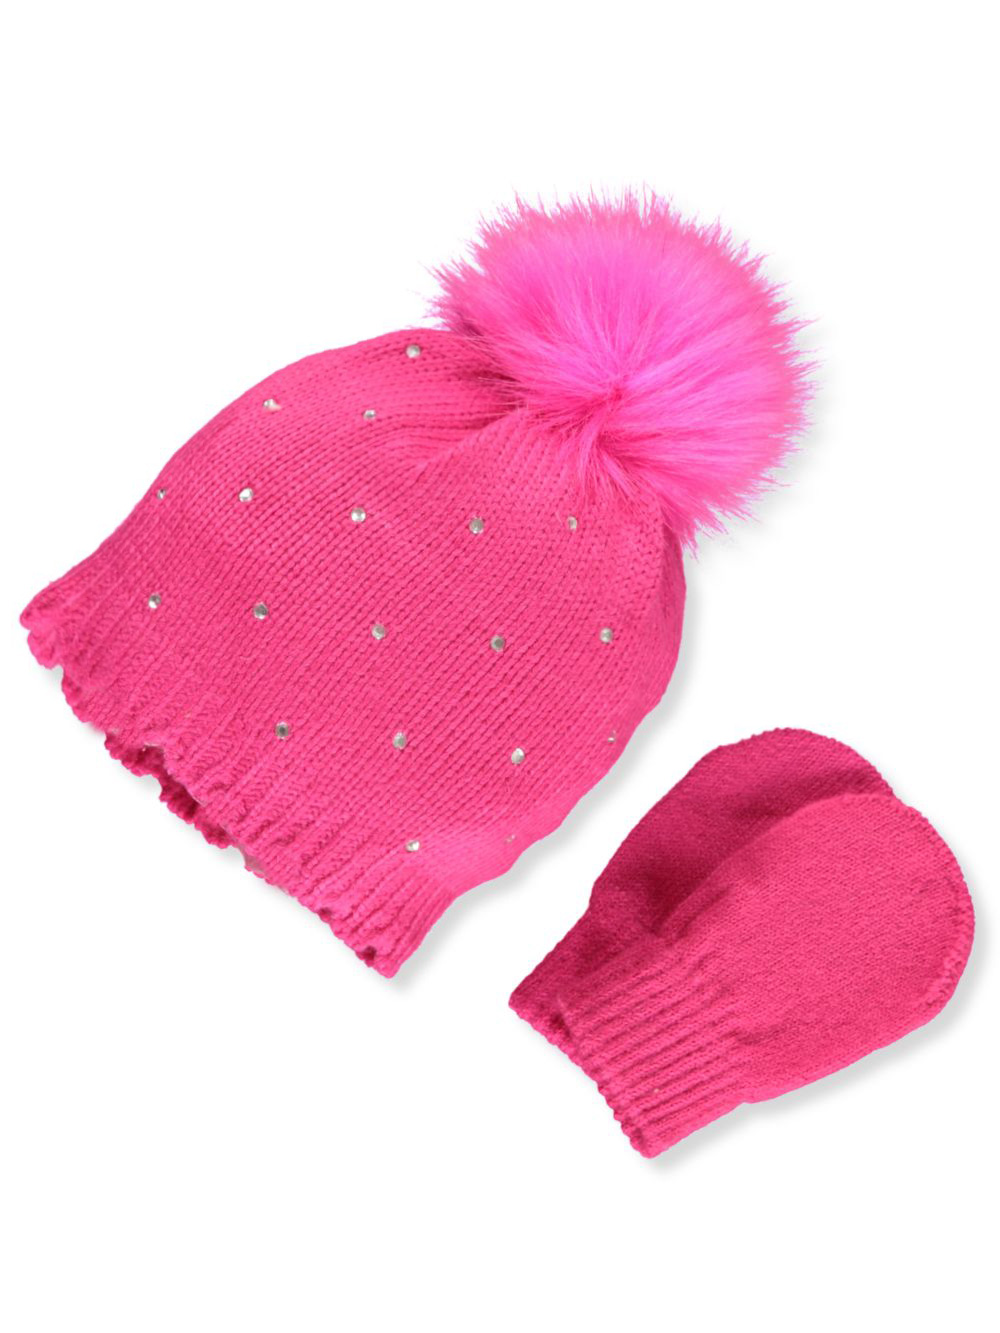 Bejeweled 2-Piece Beanie and Mittens Set